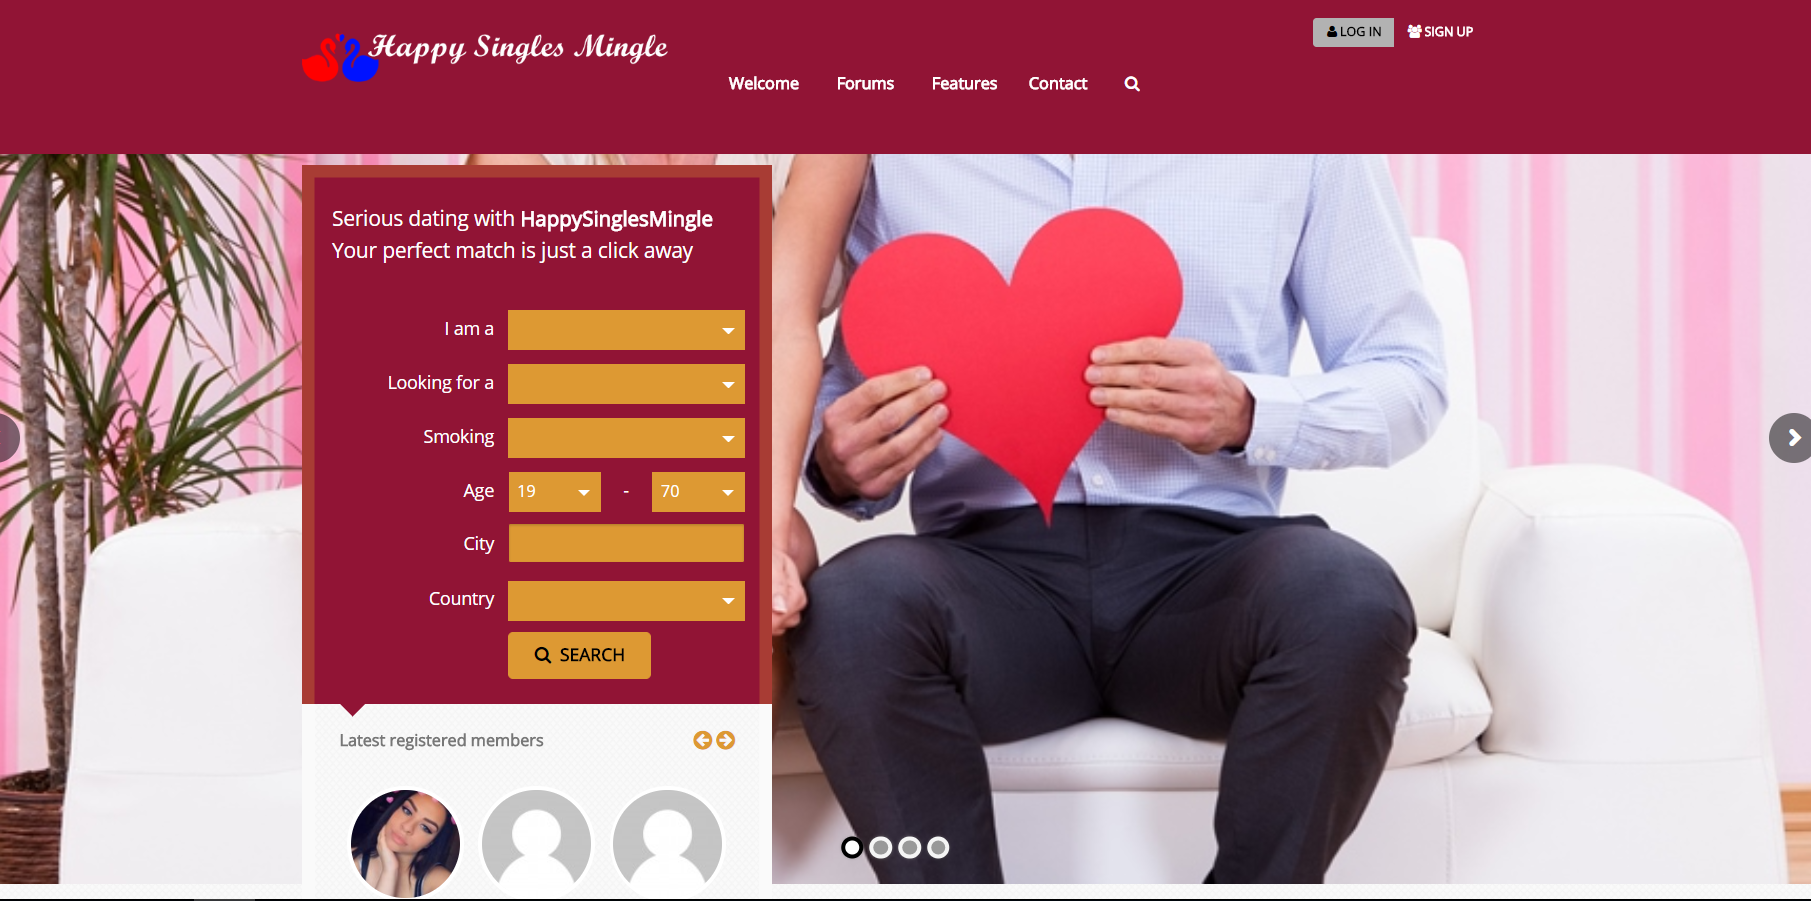 Happysinglesmingle Sign Up